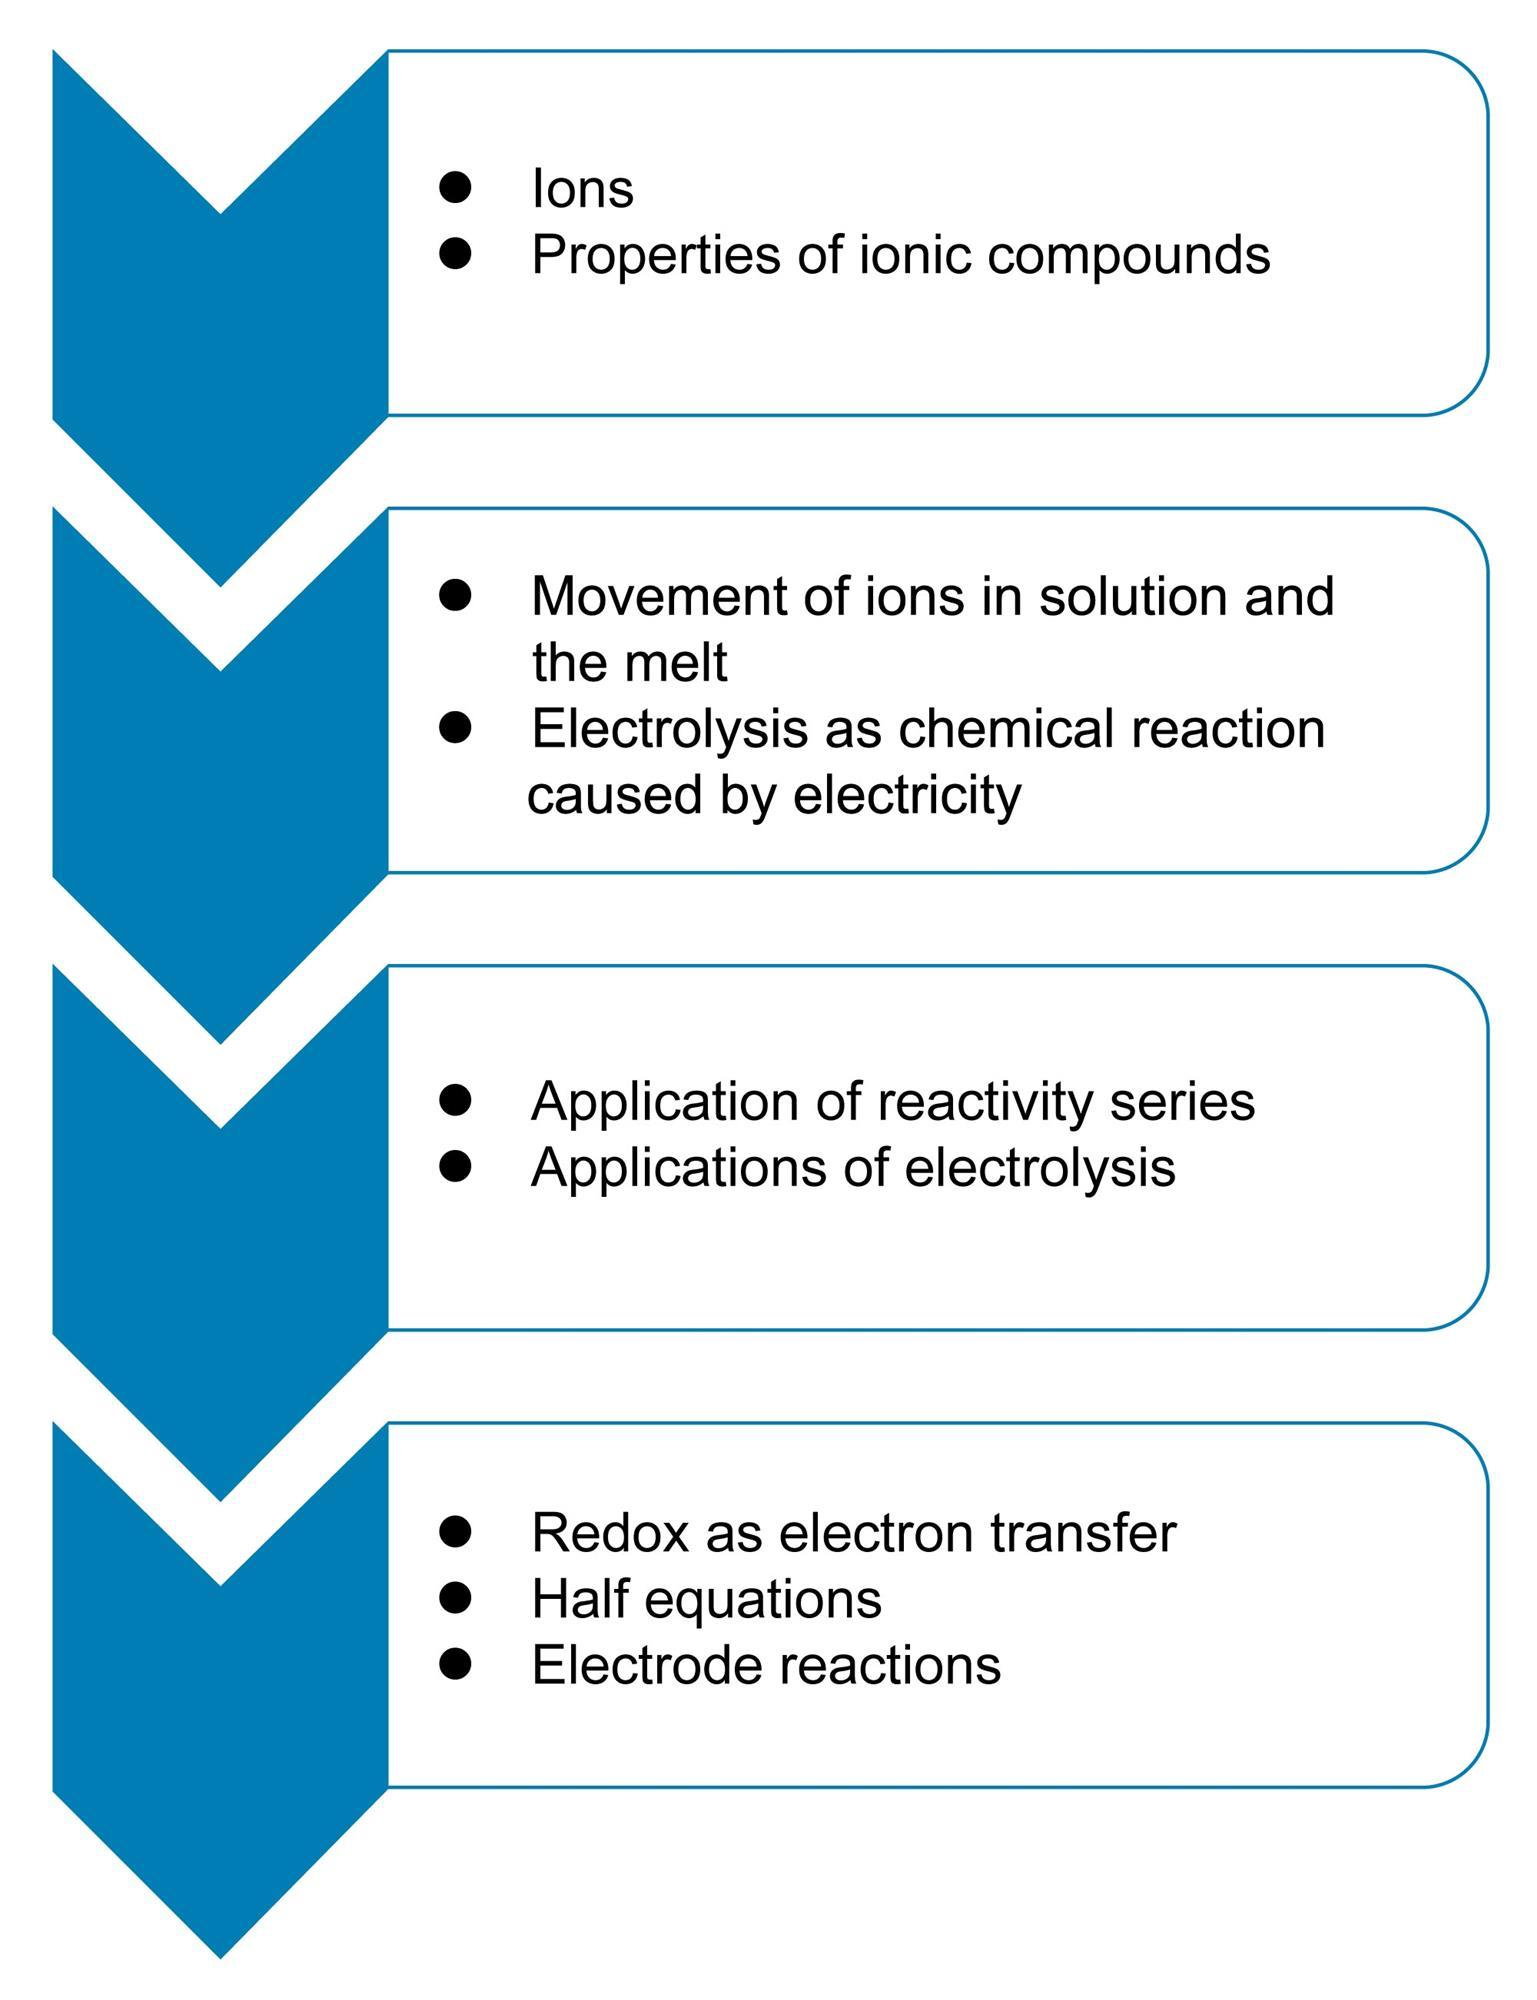 Practical Electrolysis Cpd Education In Chemistry Electrical Power Formula Basic Electric Quantities Formulas